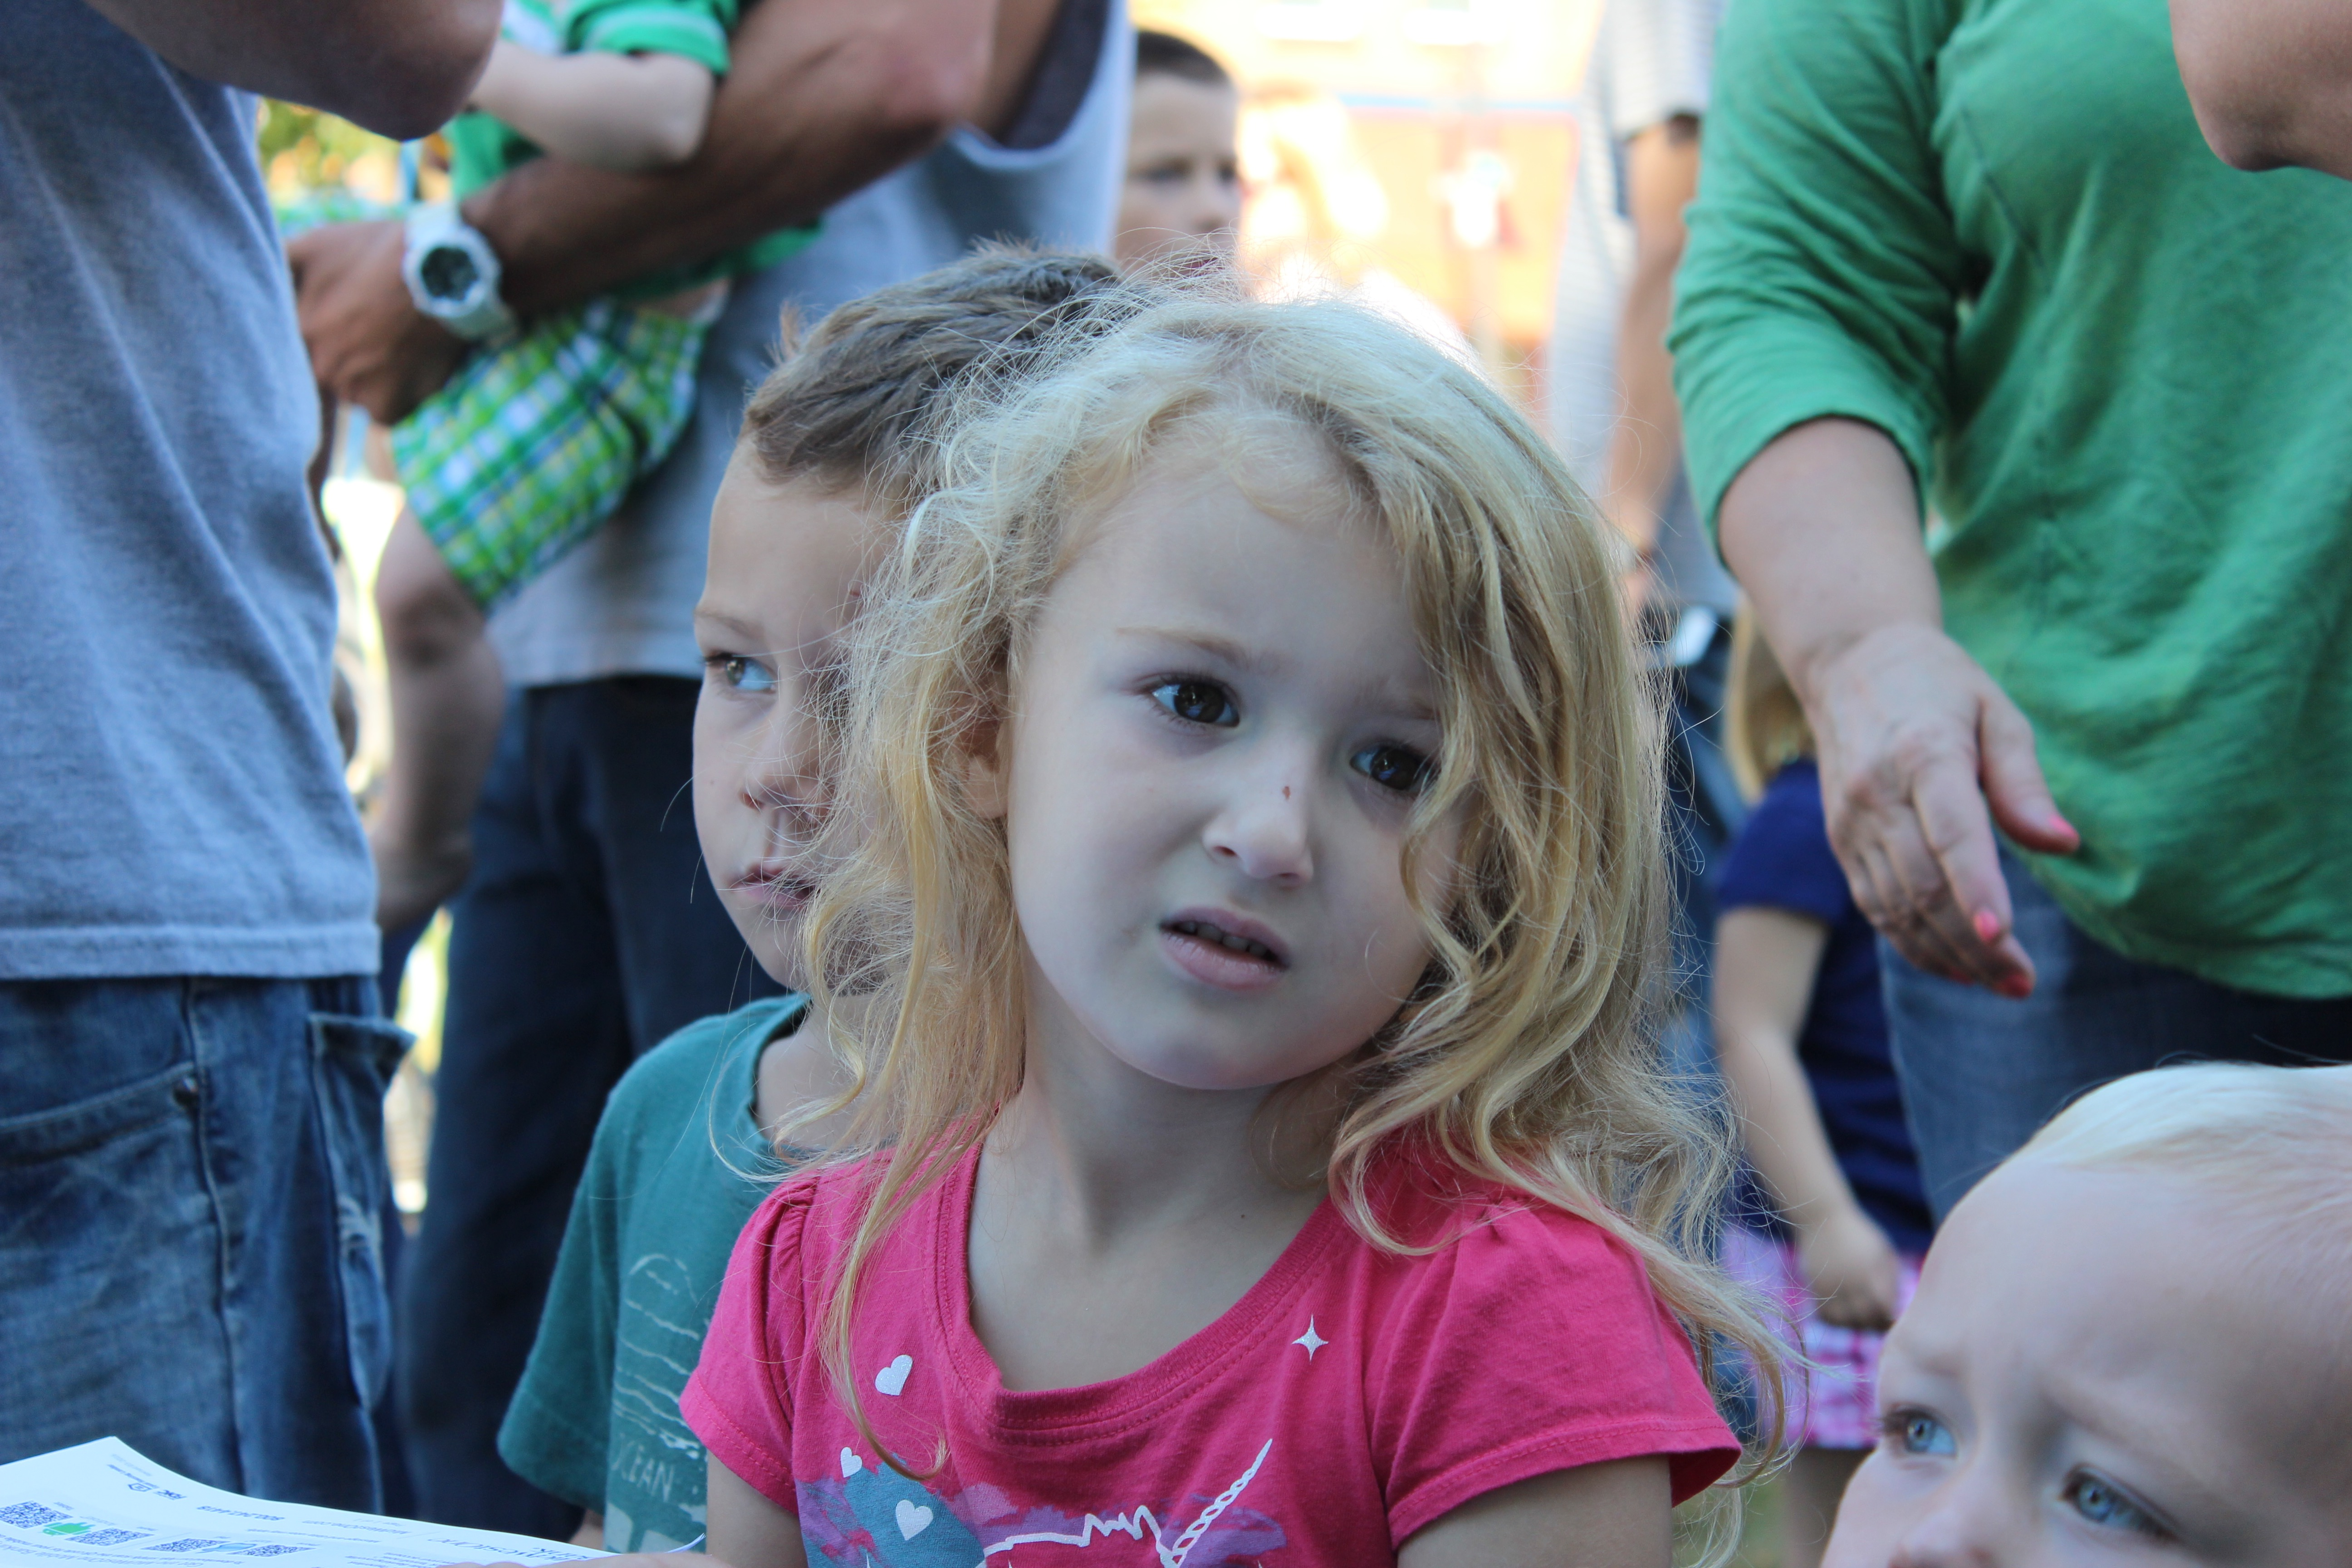 Waiting patiently for a balloon at the Kiwanis Kids' Day on the square